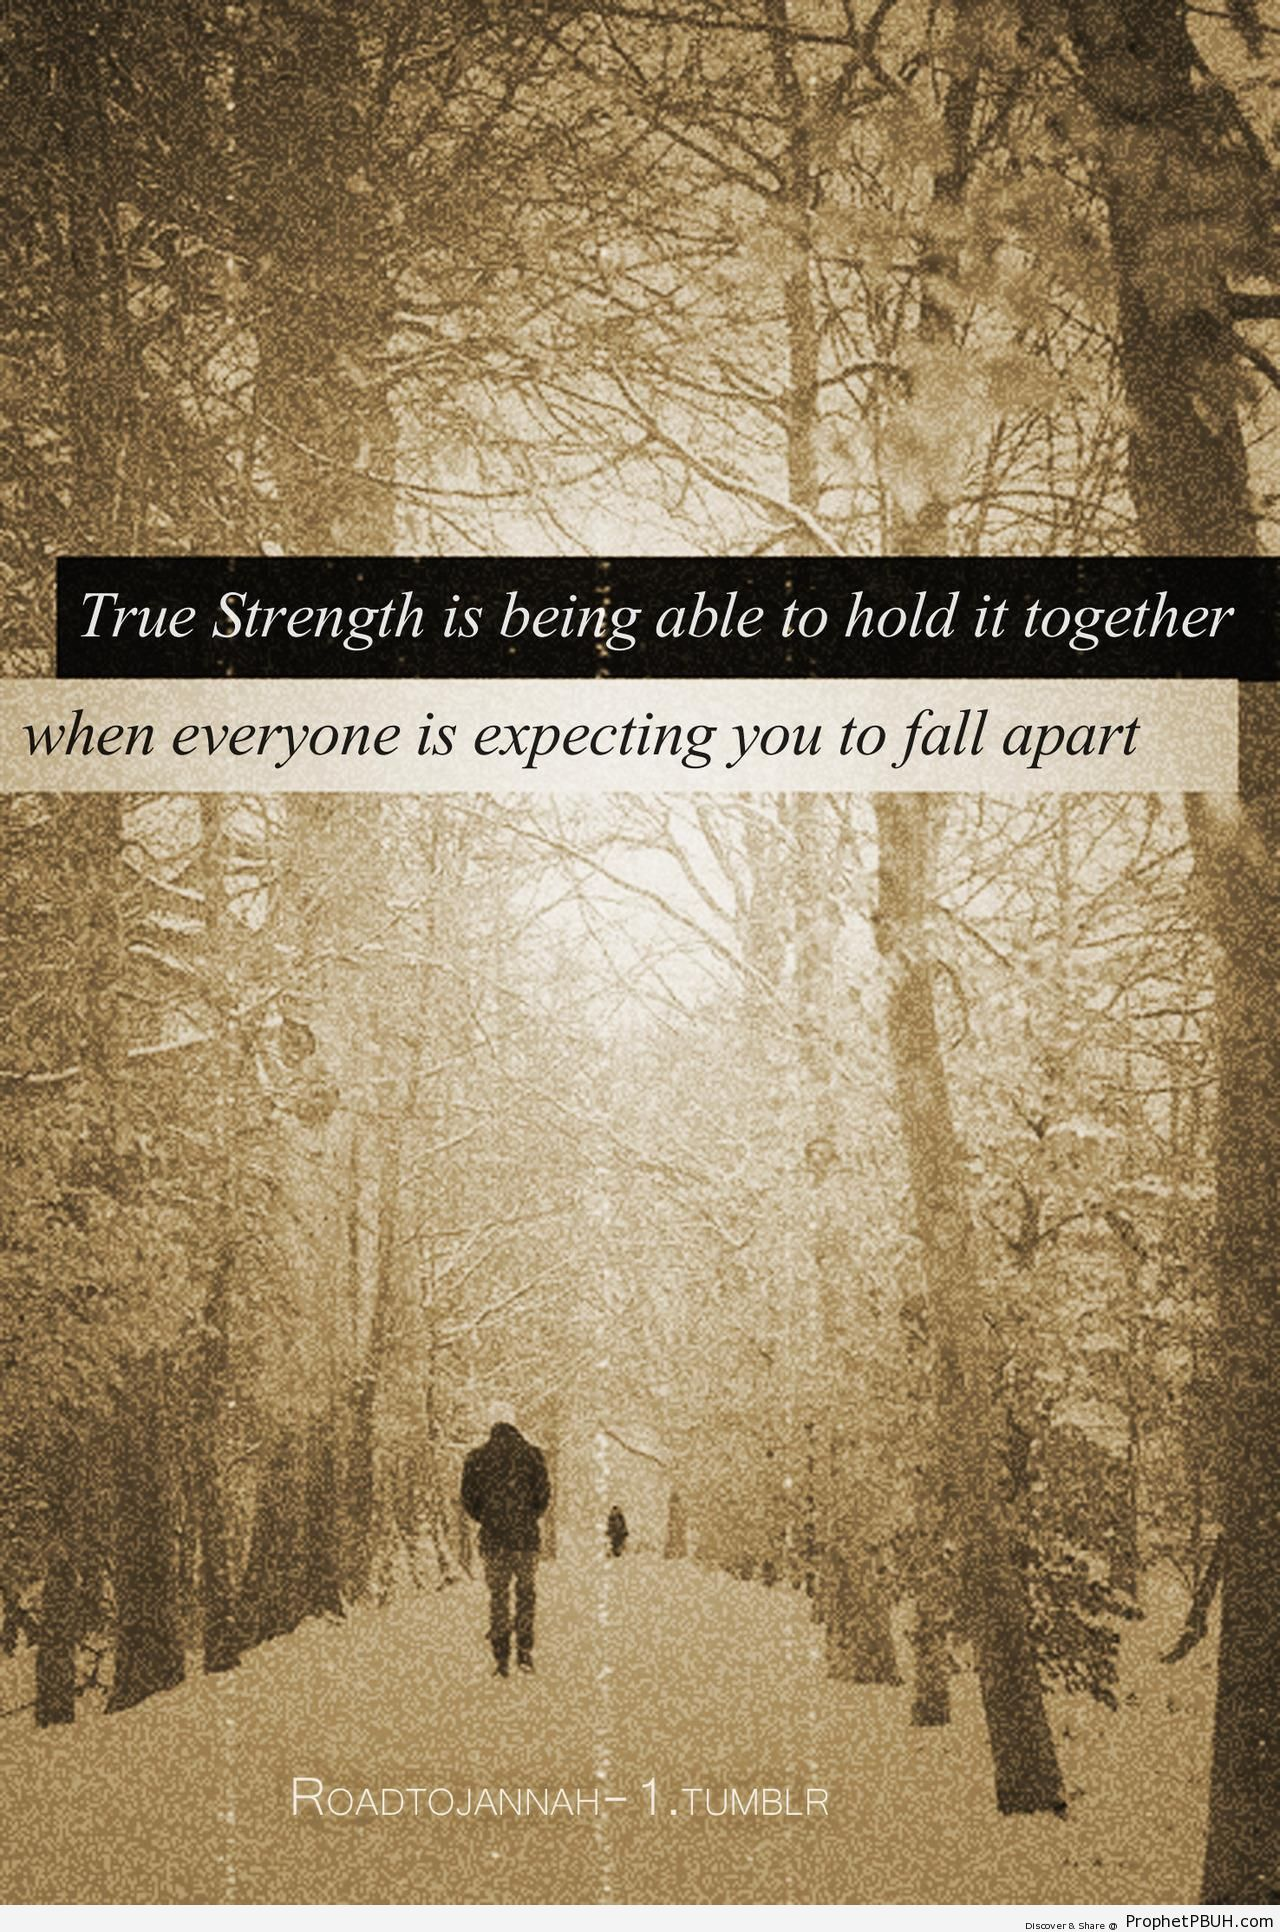 Quotes About Strength True Strength  Islamic Quotes About Strength  Prophet Pbuh